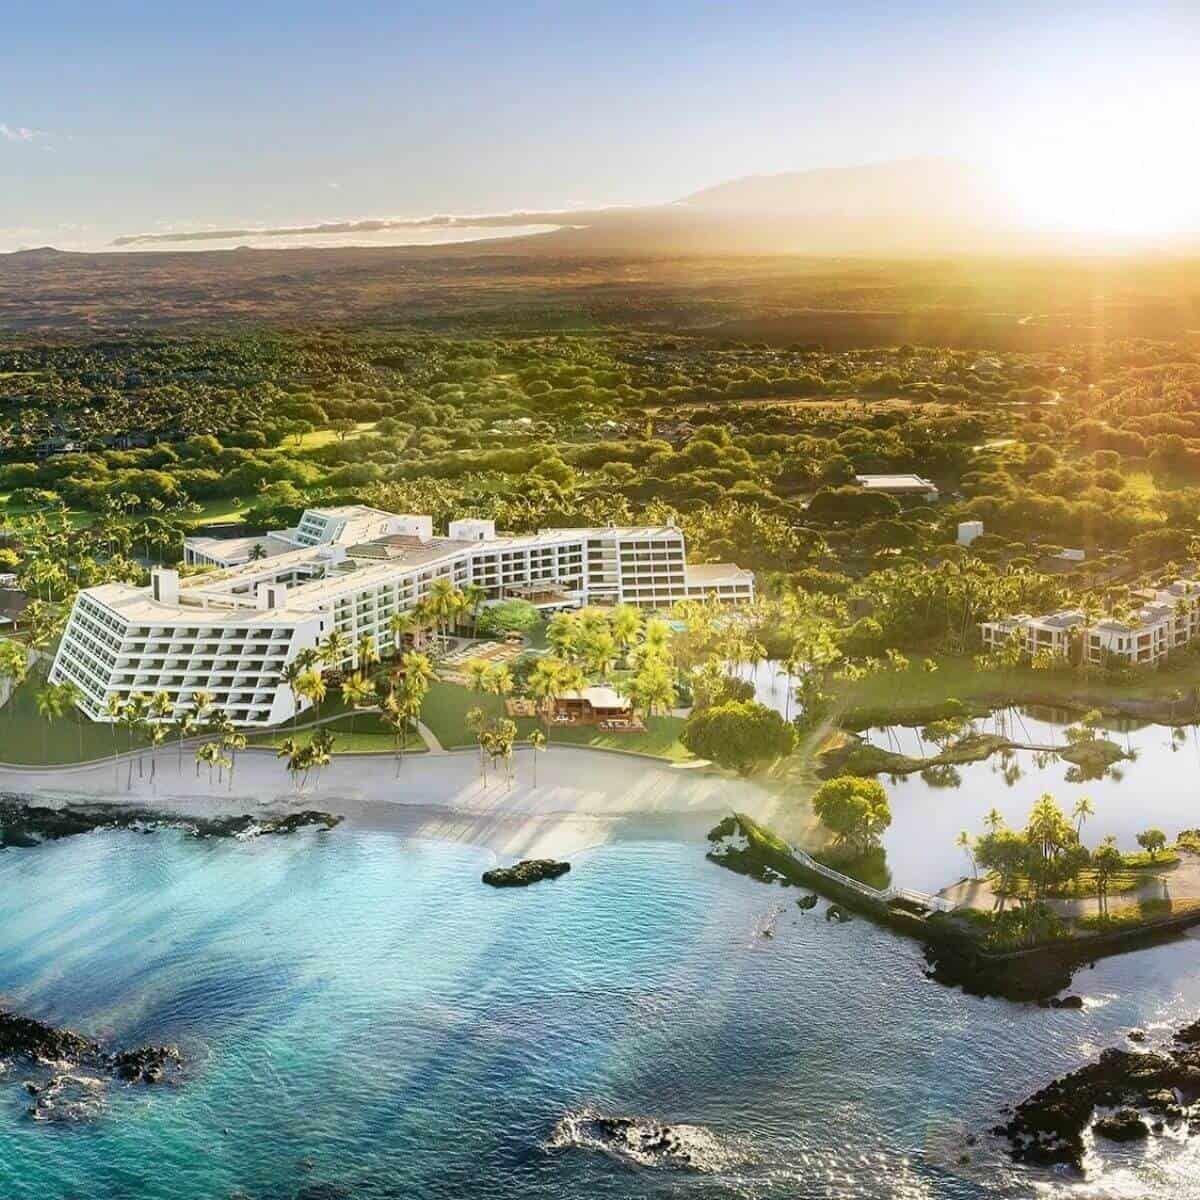 Aerial view of Mauna Lani Resort, the water, and trees behind it.